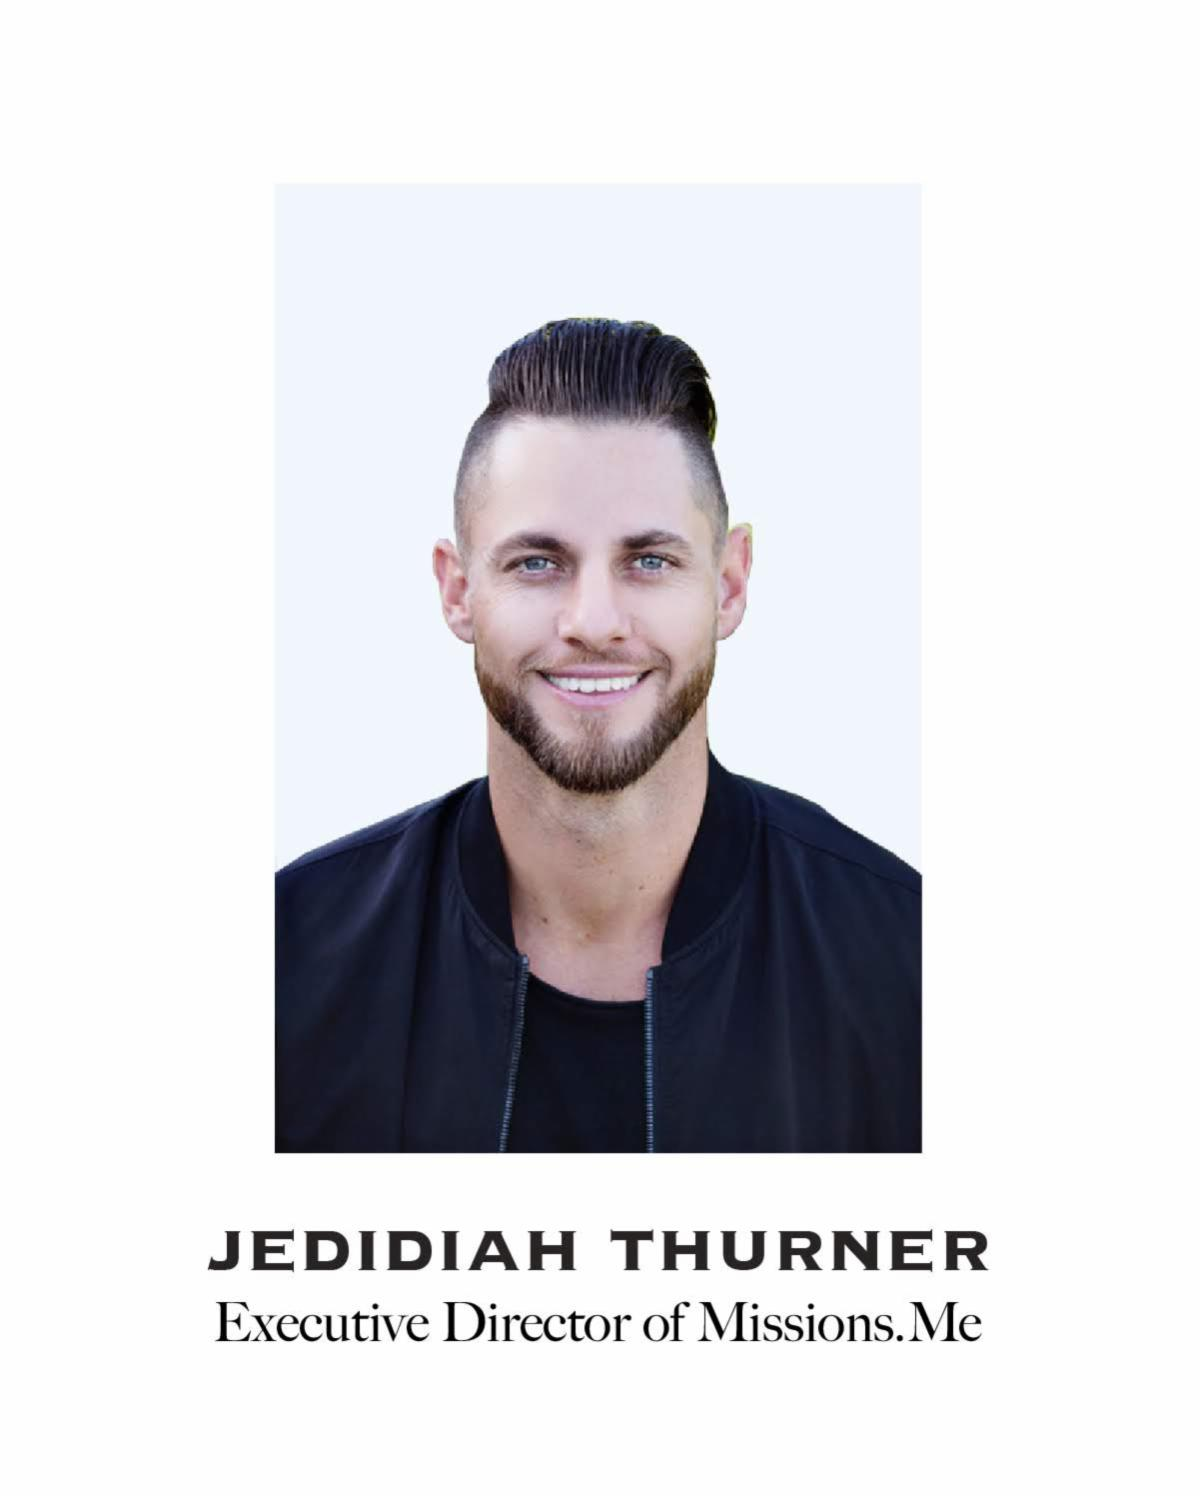 Headshot of Jedidiah Thurner, Executive Director of Missions.Me.